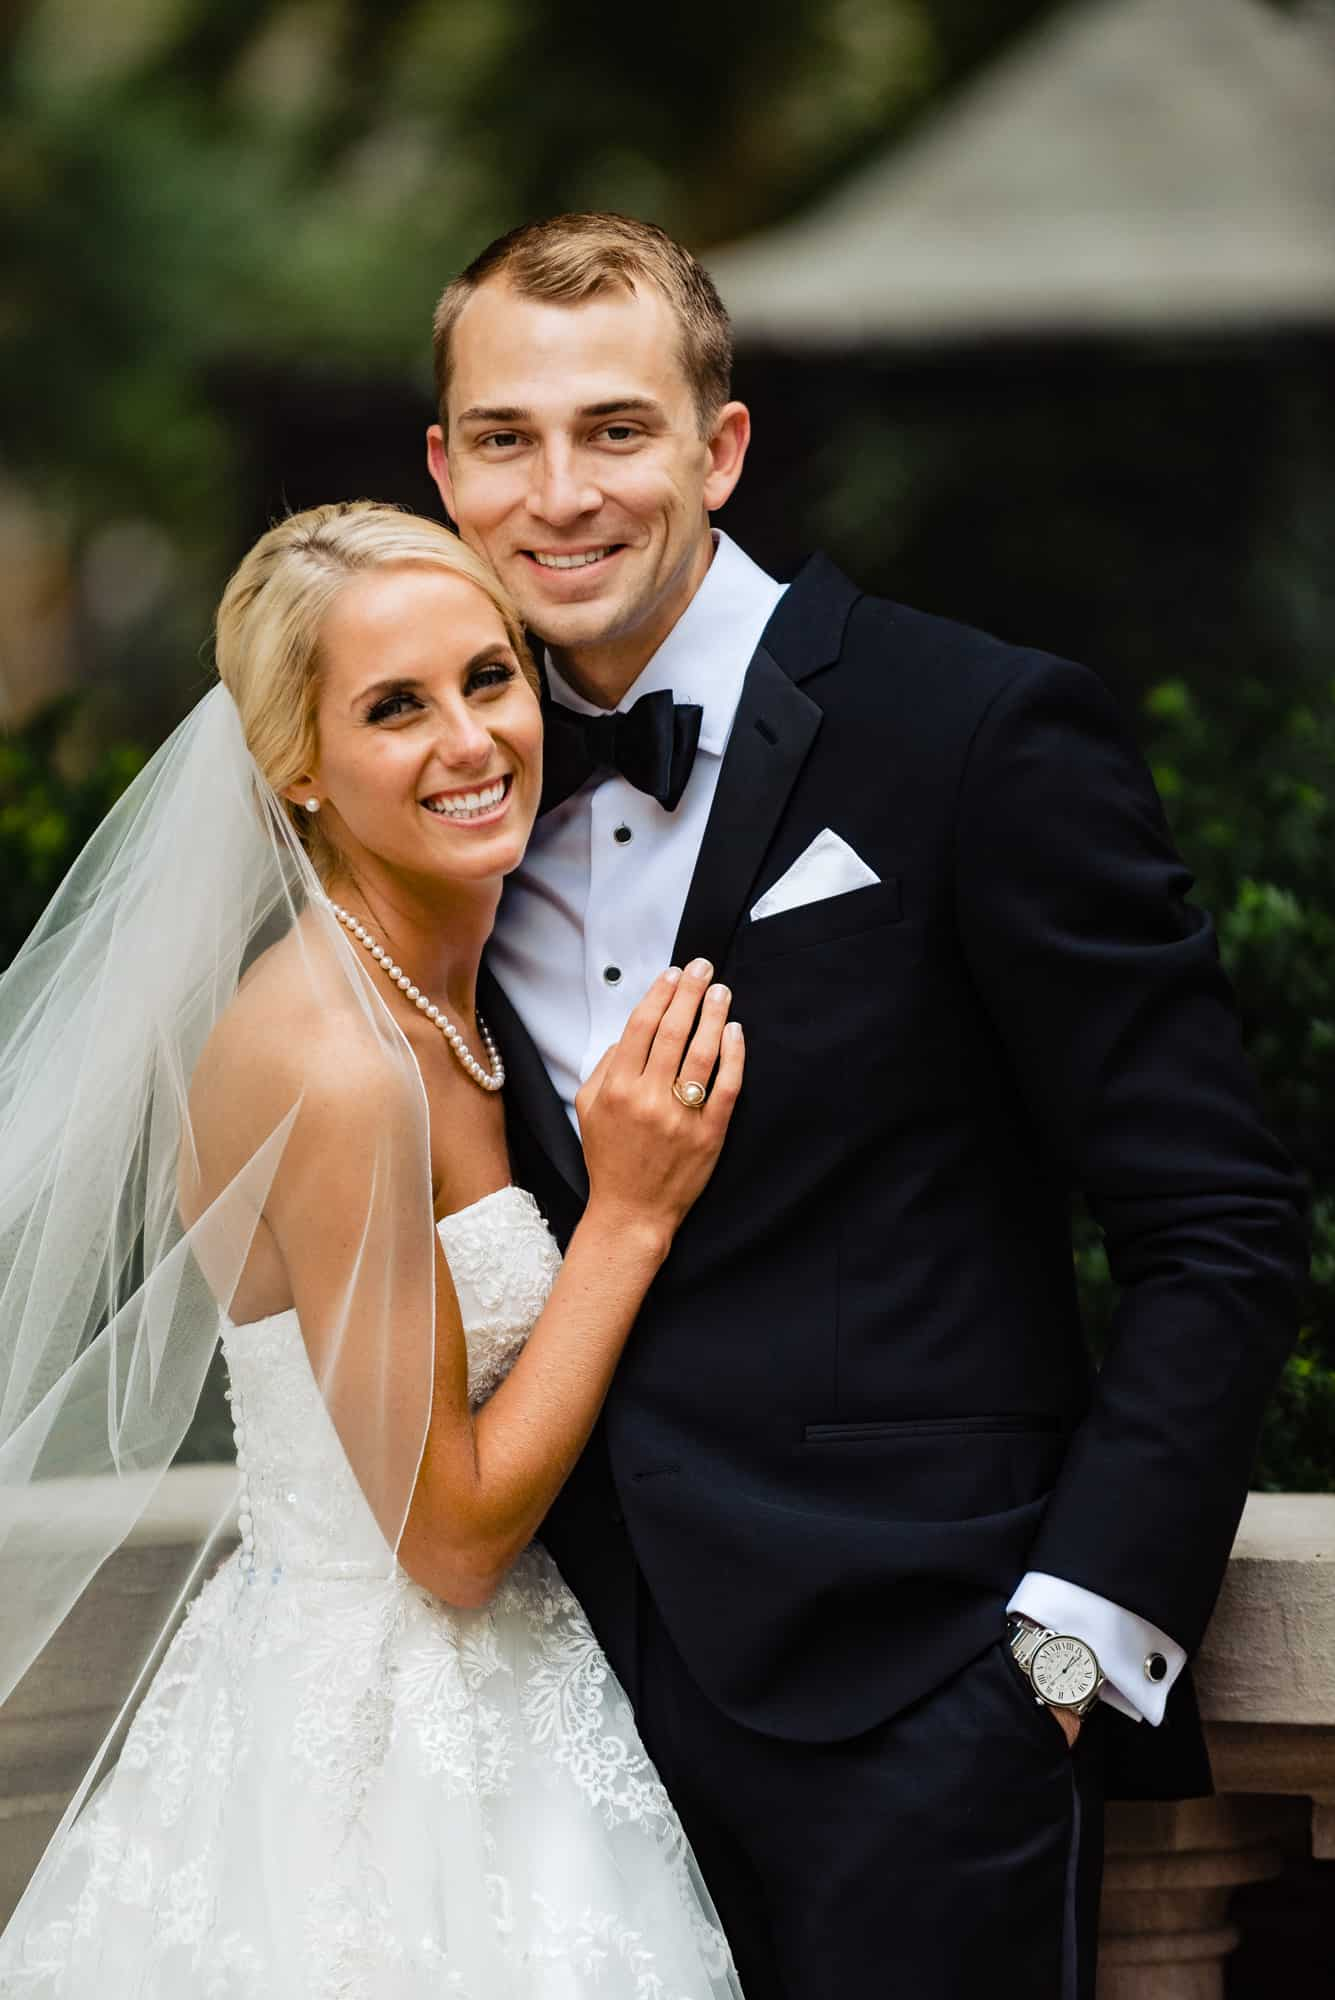 Ritz Carlton Philadelphia Wedding|bride and groom embracing looking at camera